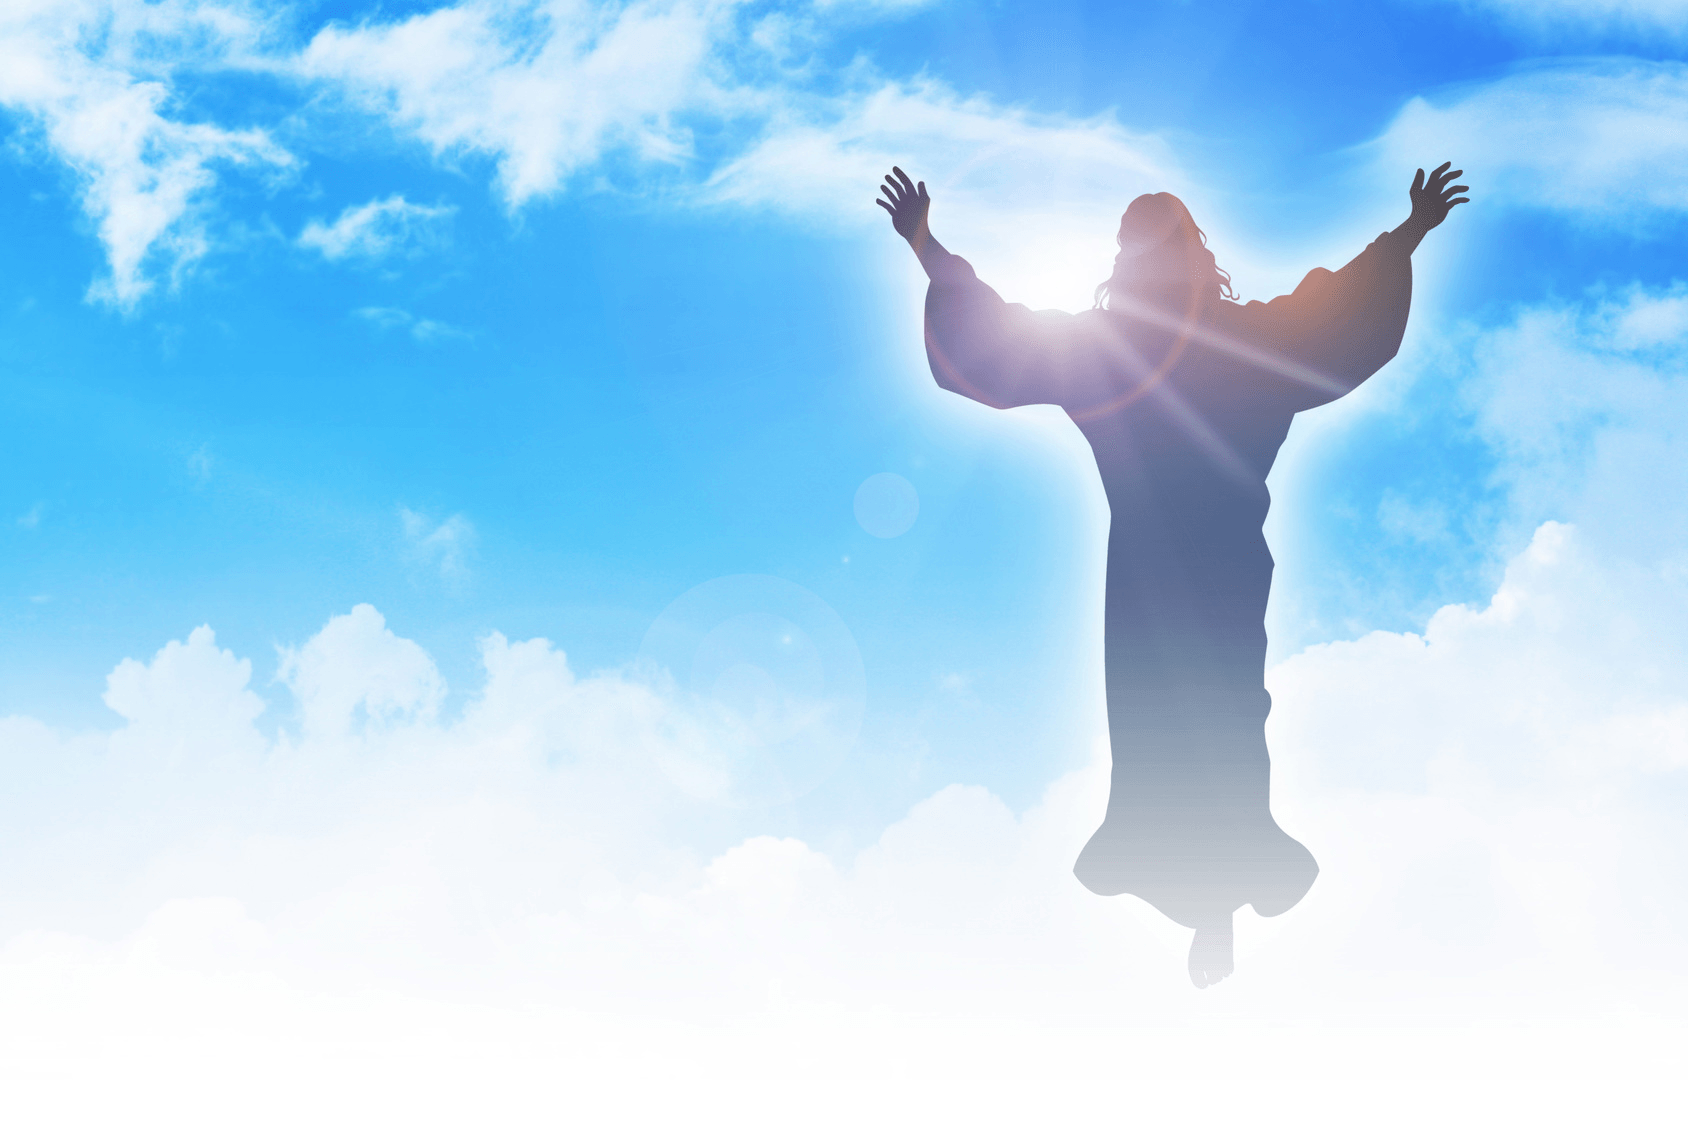 Ascension Day 2019 Wishes, Quotes, Messages, Images & Prayers